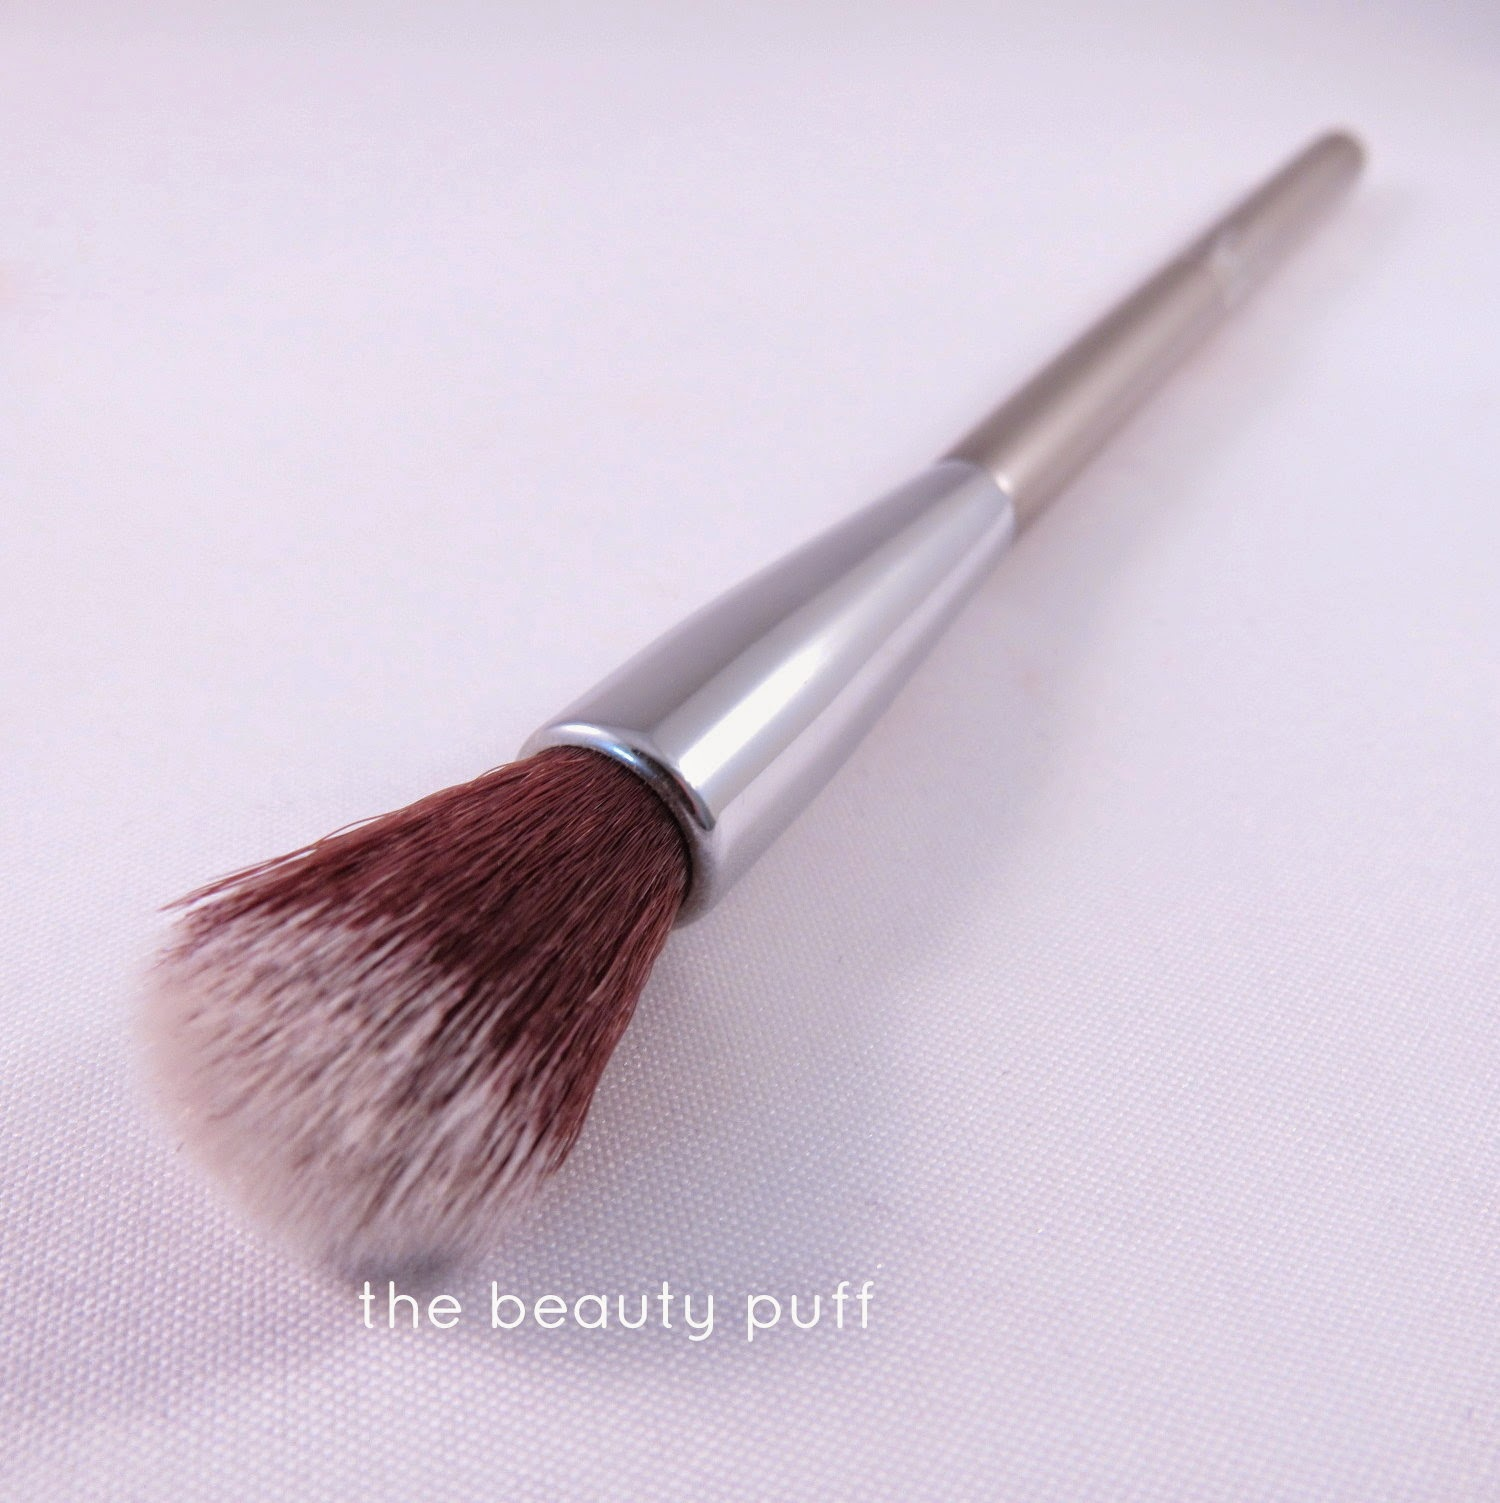 it brushes for ulta airbrush blurring concealer brush - the beauty puff